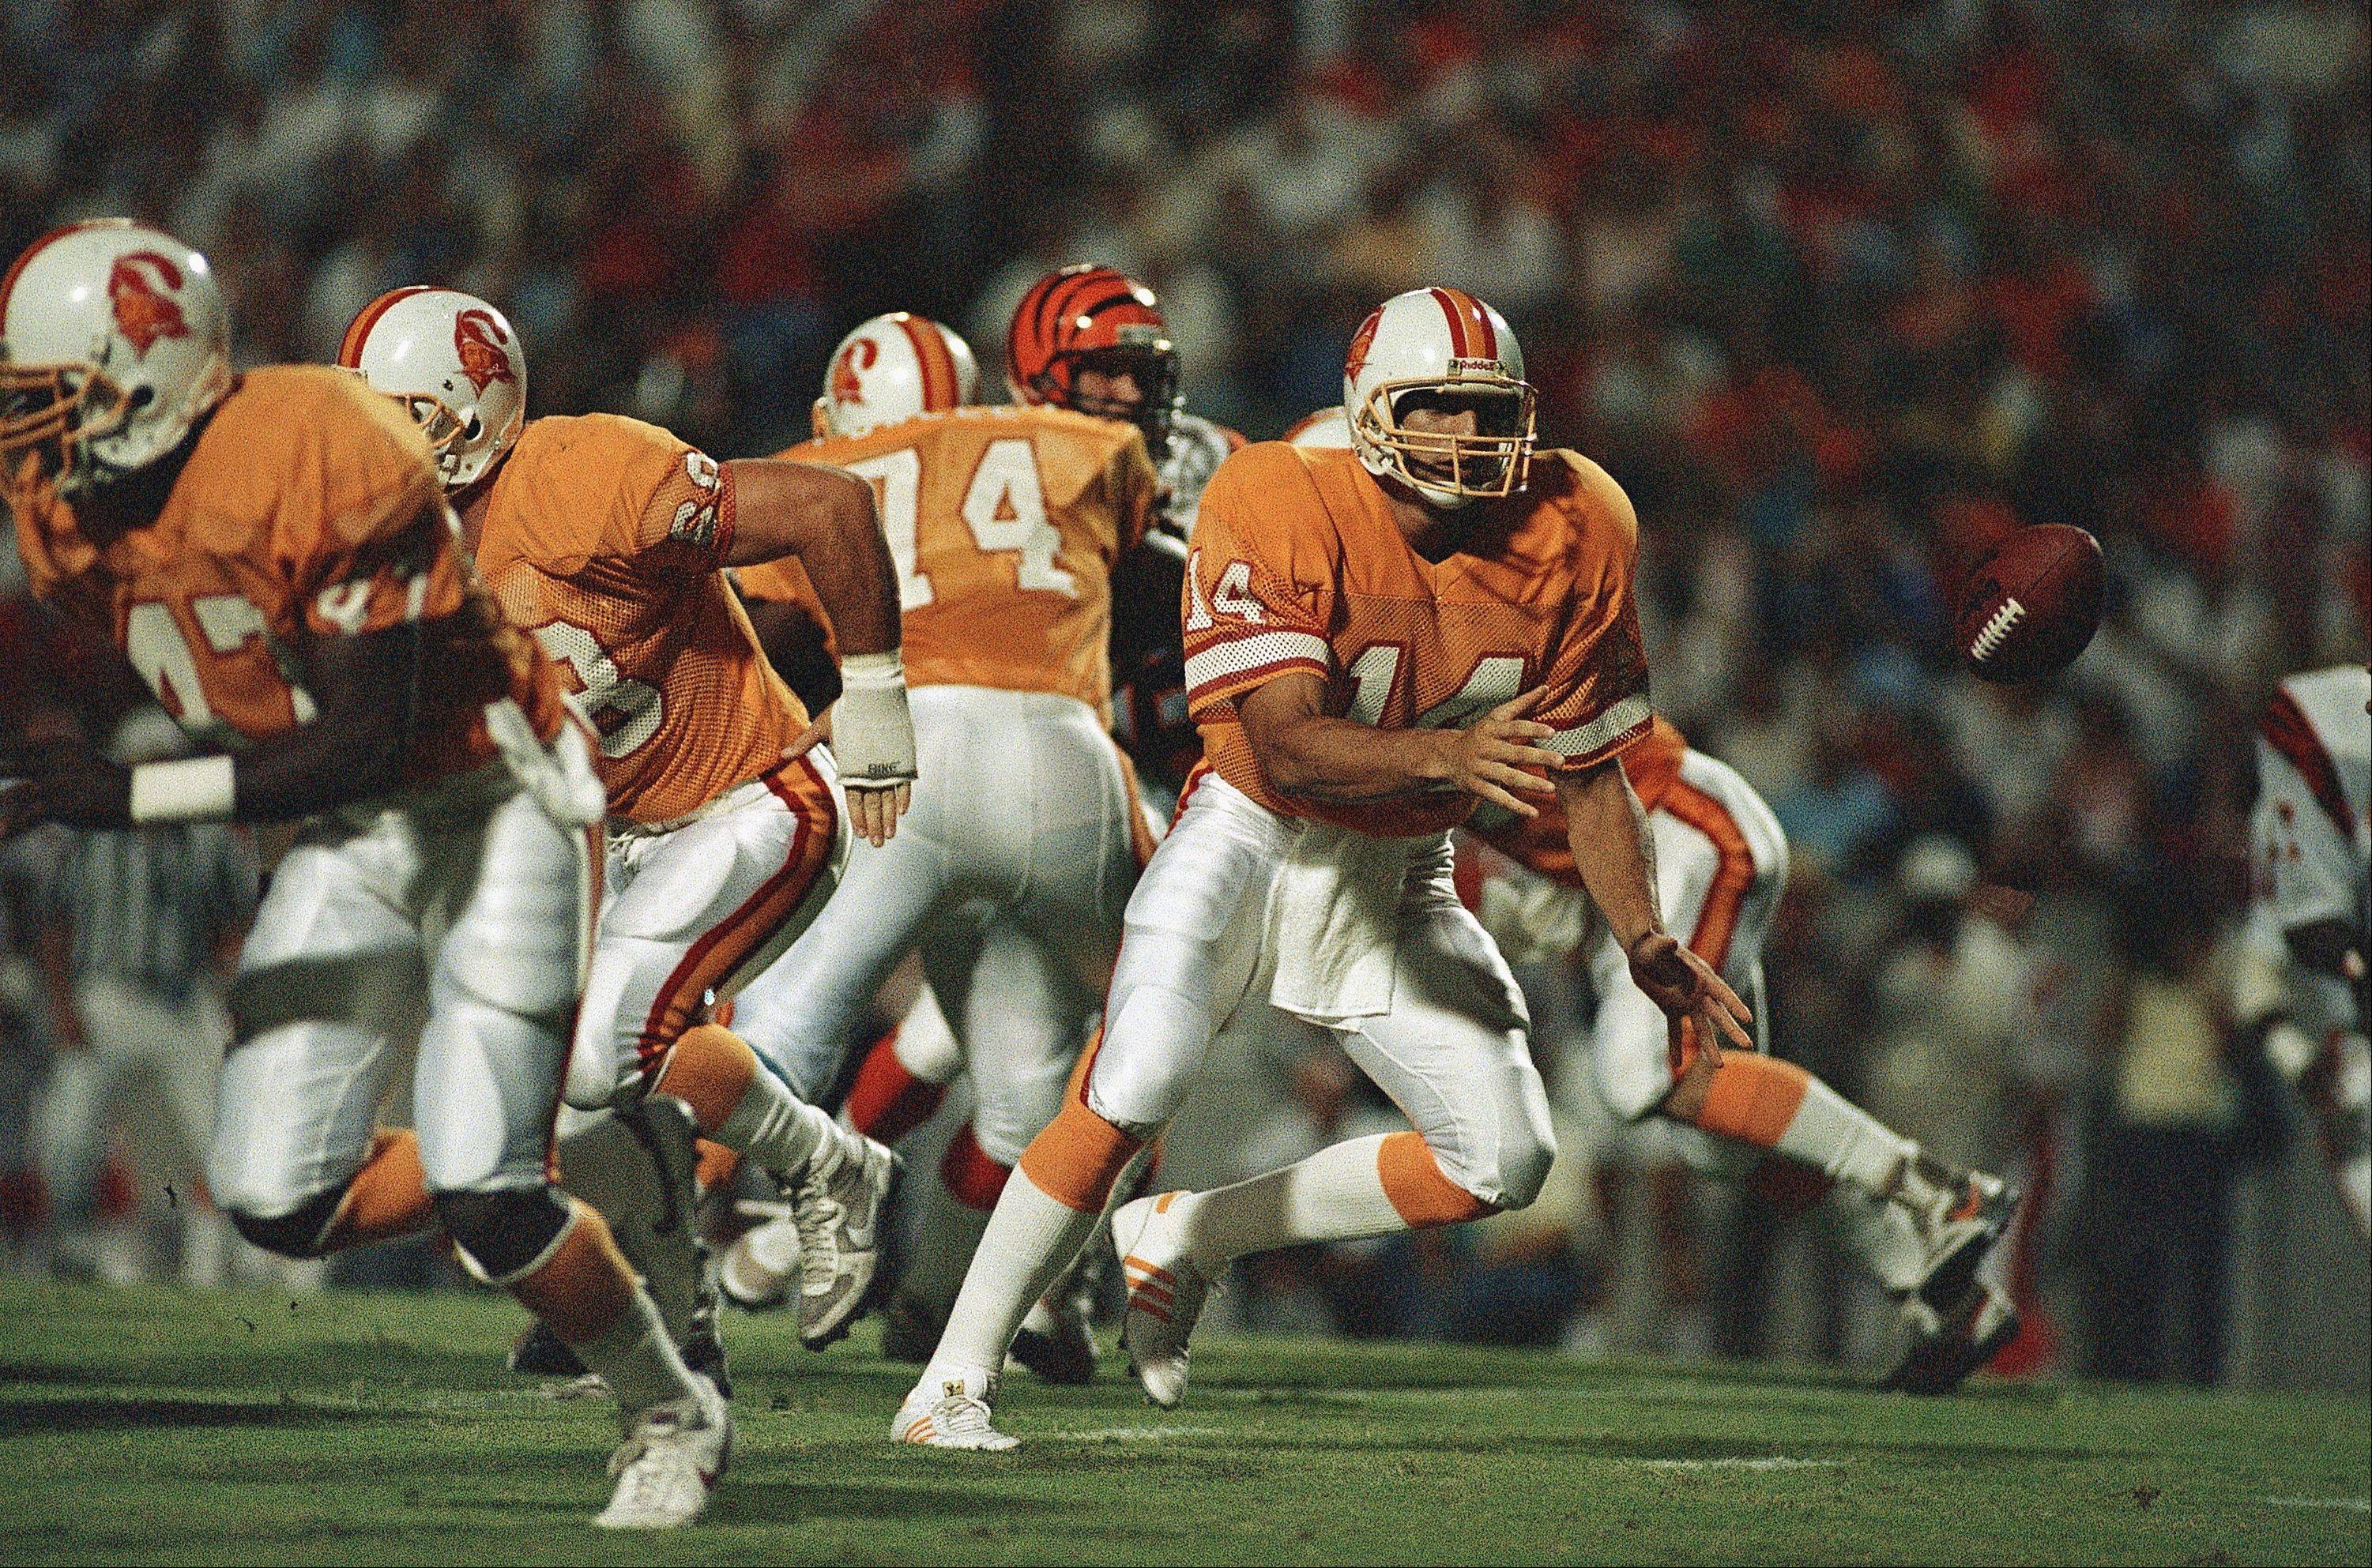 Trestman helped Vinny Testeverde, above, make his NFL debut with the Tampa Bay Buccaneers in 1987.